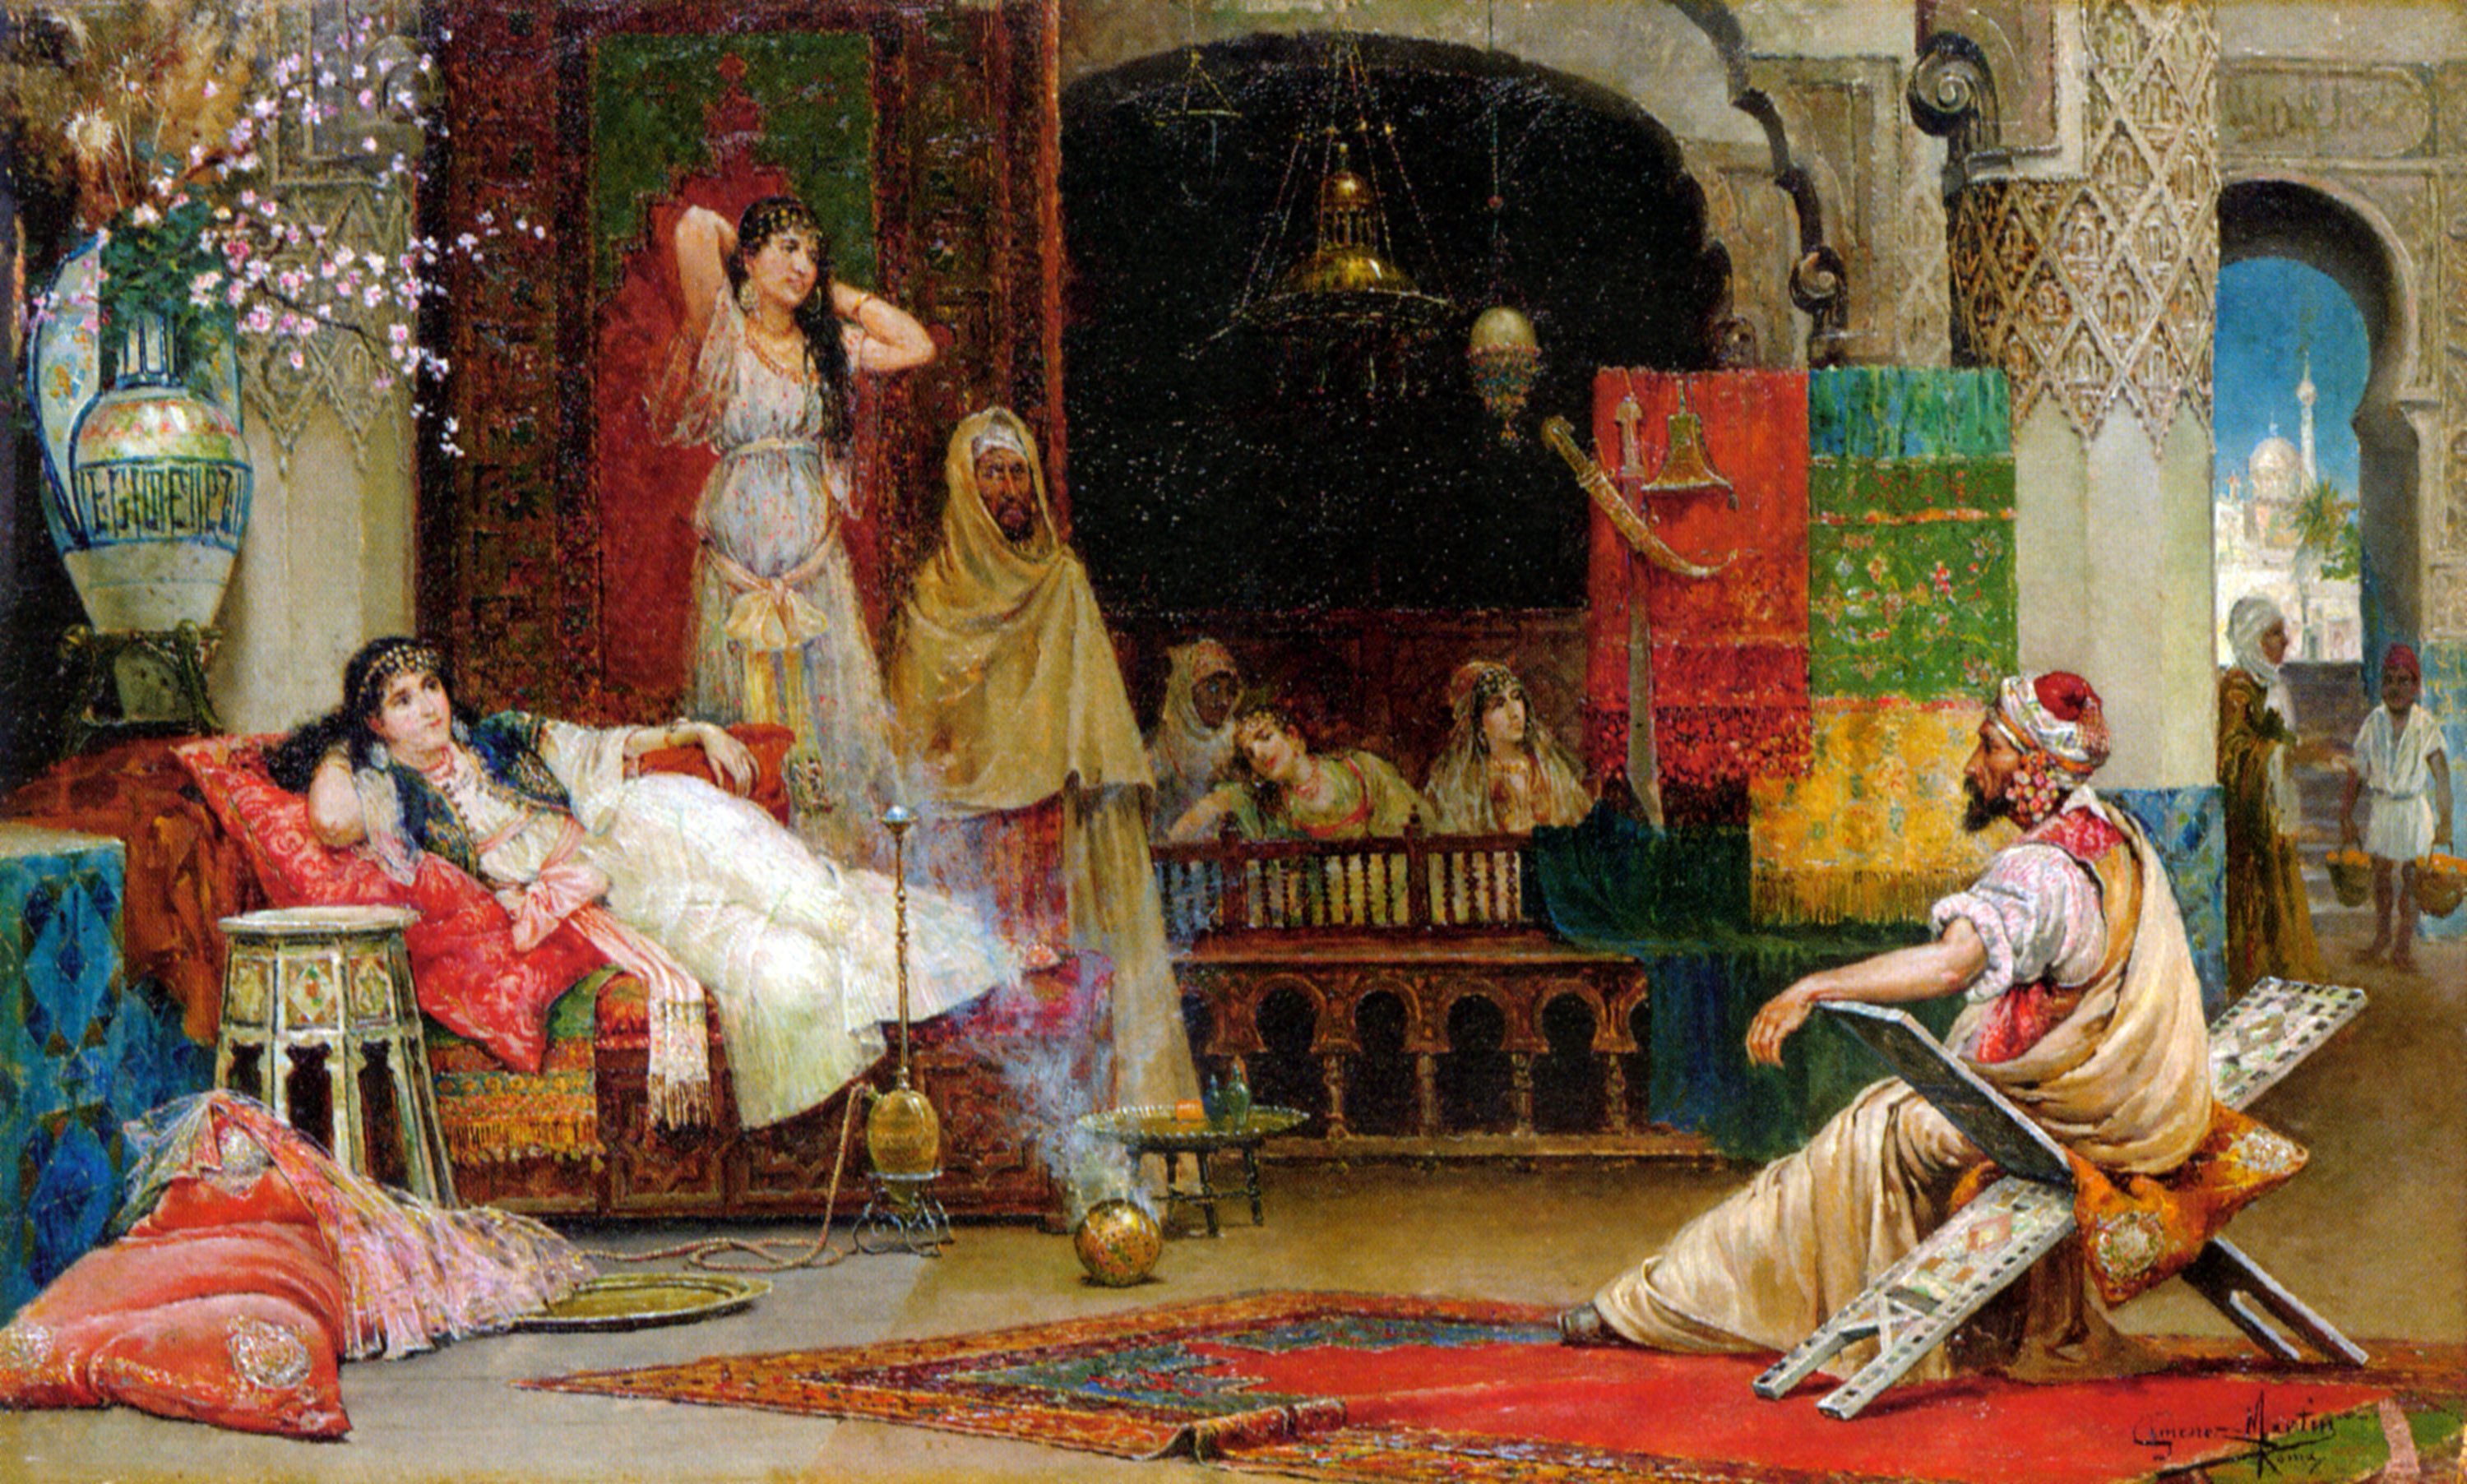 In the Harem :: Juan Gimenez-Martin - Arab women (Harem Life scenes) in art  and painting ôîòî